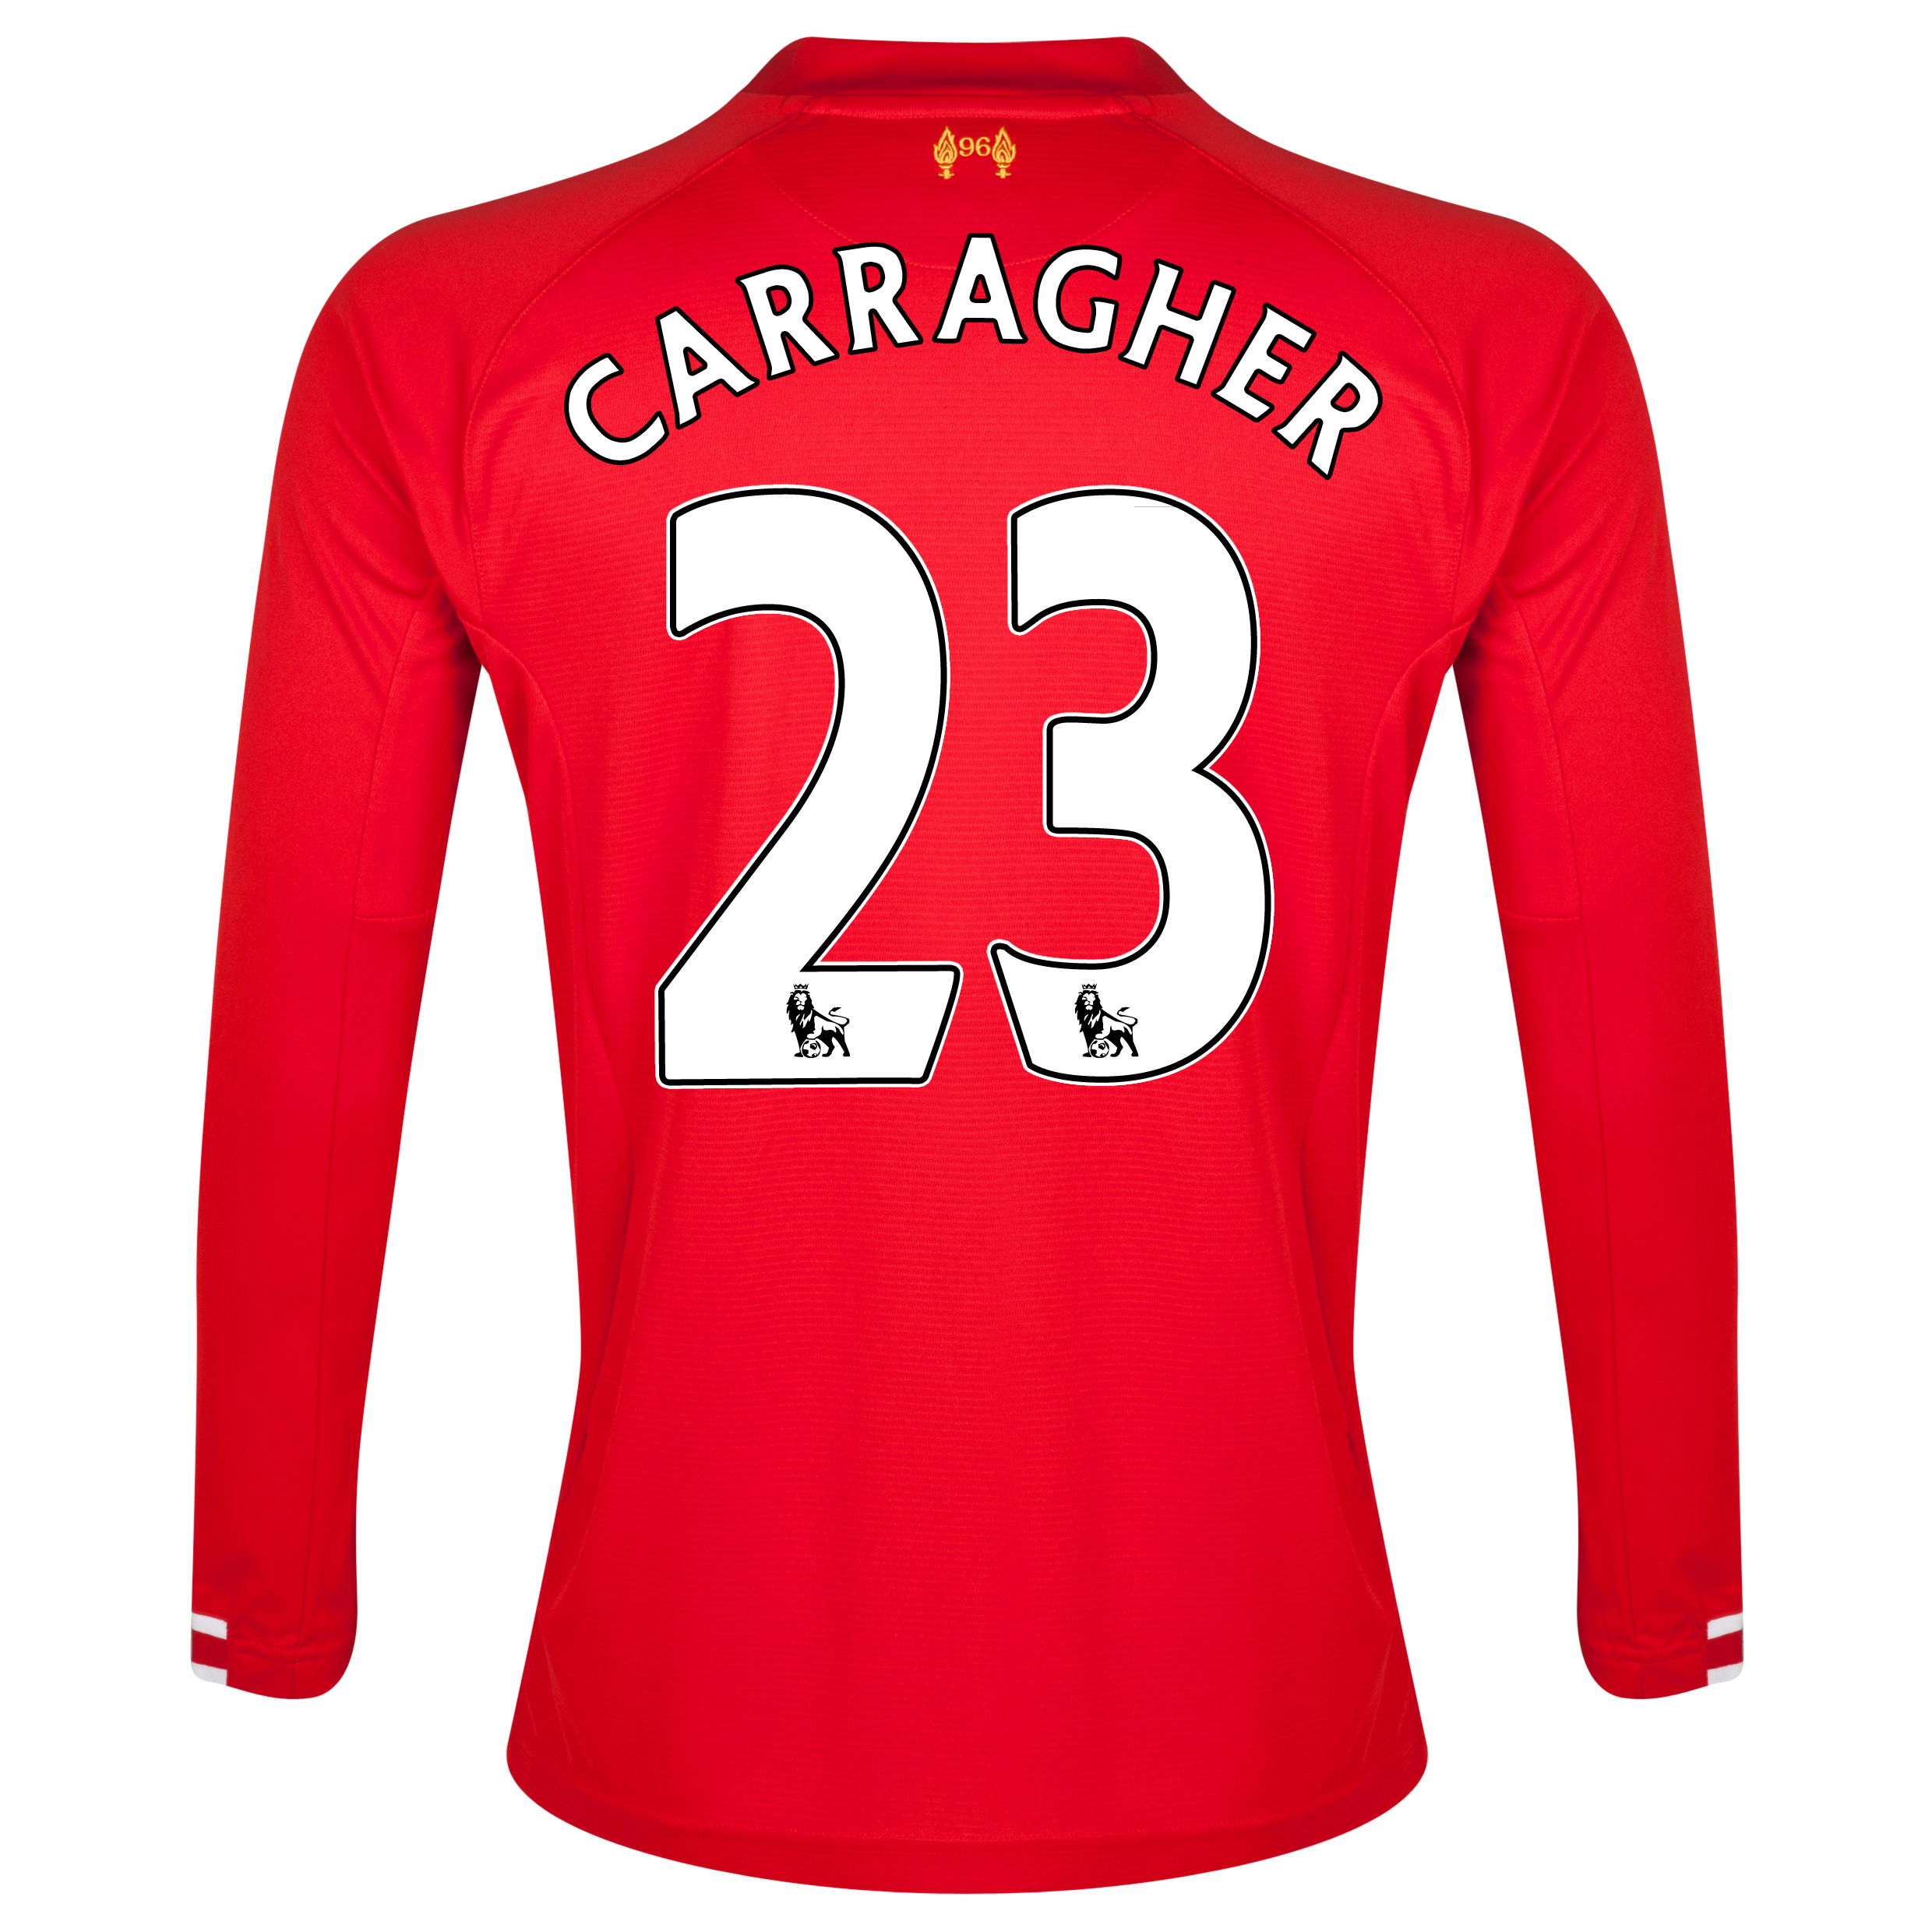 Liverpool Home Shirt 2013/14 Long sleeve with Carragher 23 printing